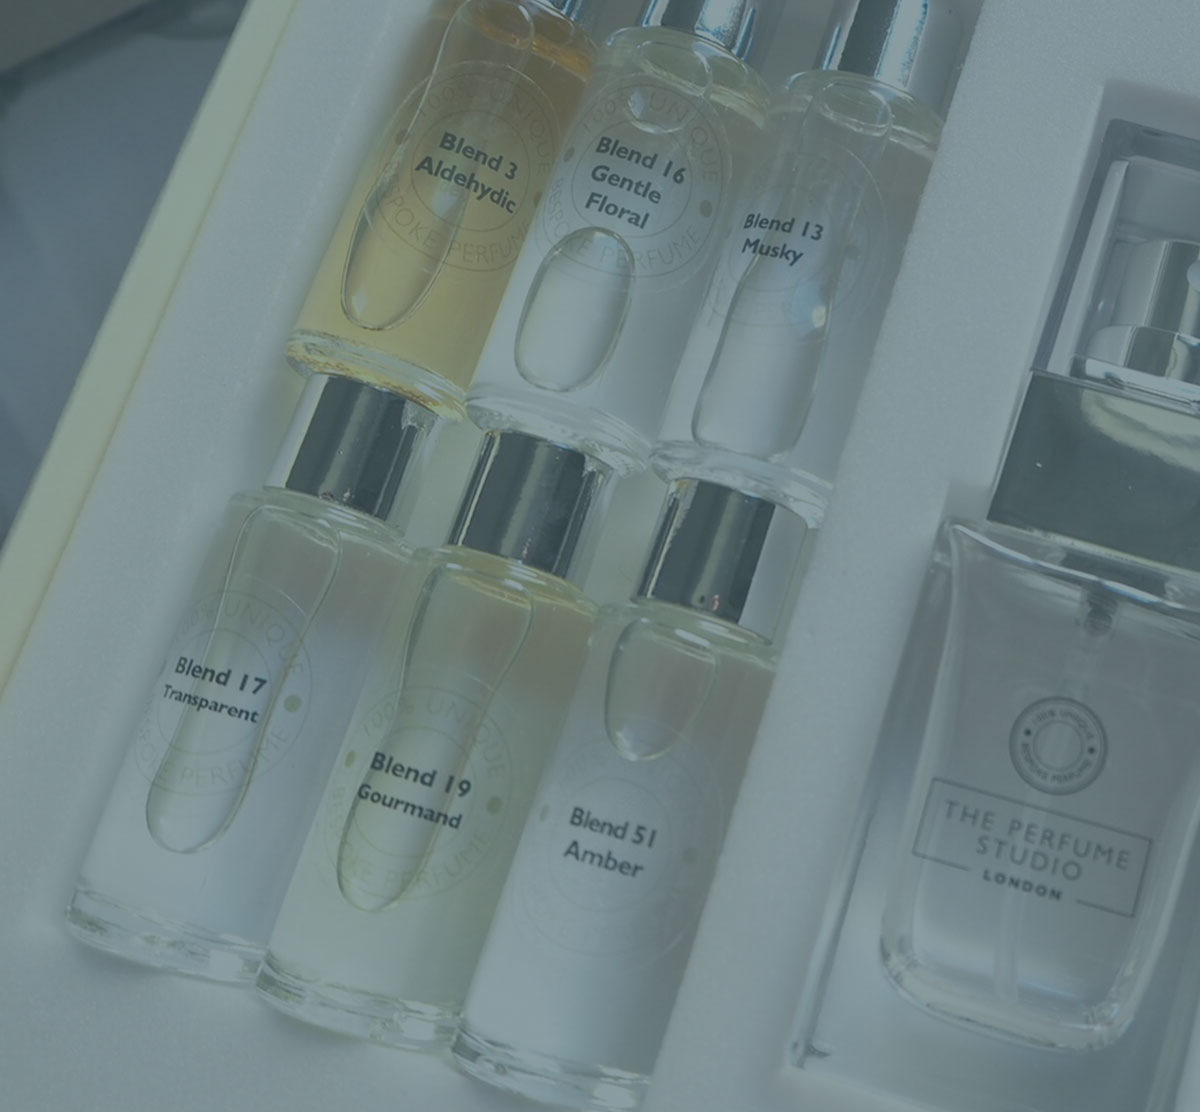 Bespoke your perfume collection